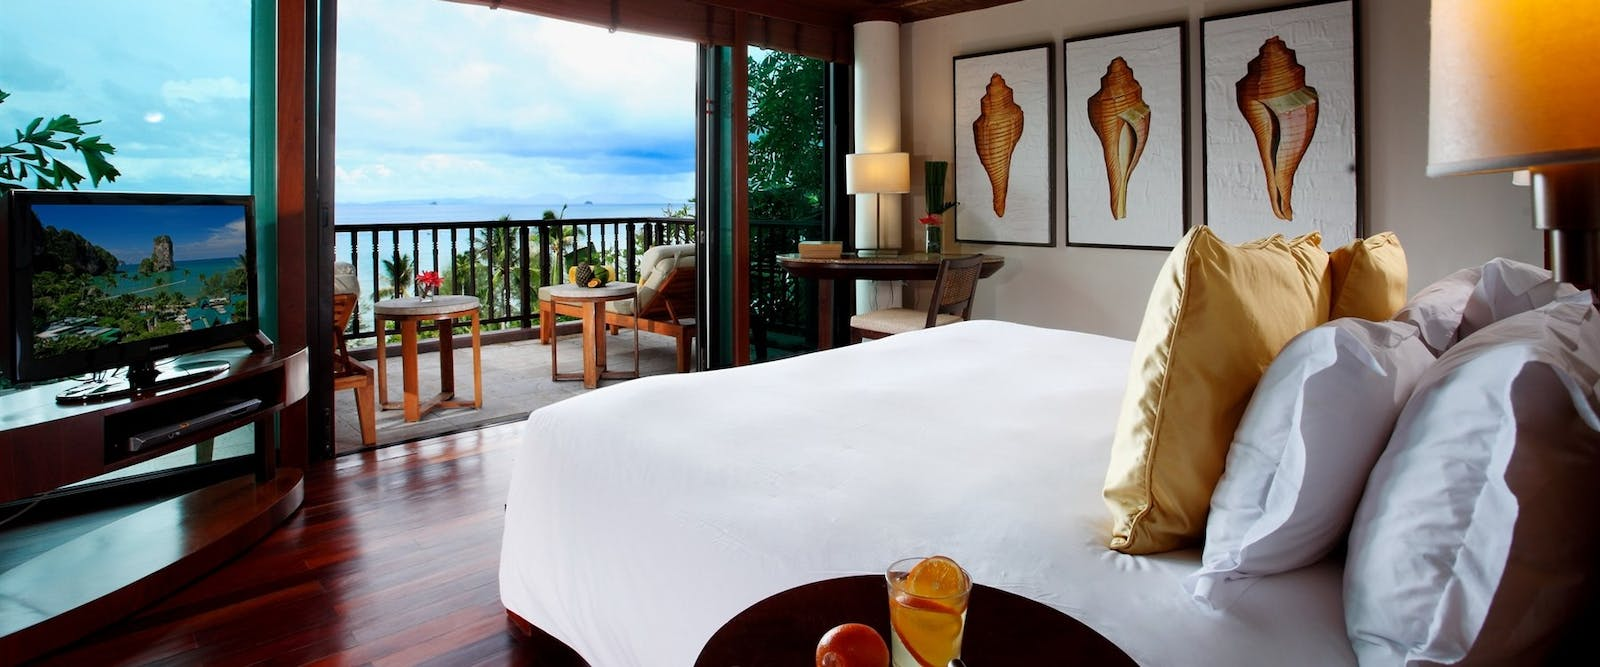 Sea front bedroom at Centara Grand Beach Resort & Villas Krabi